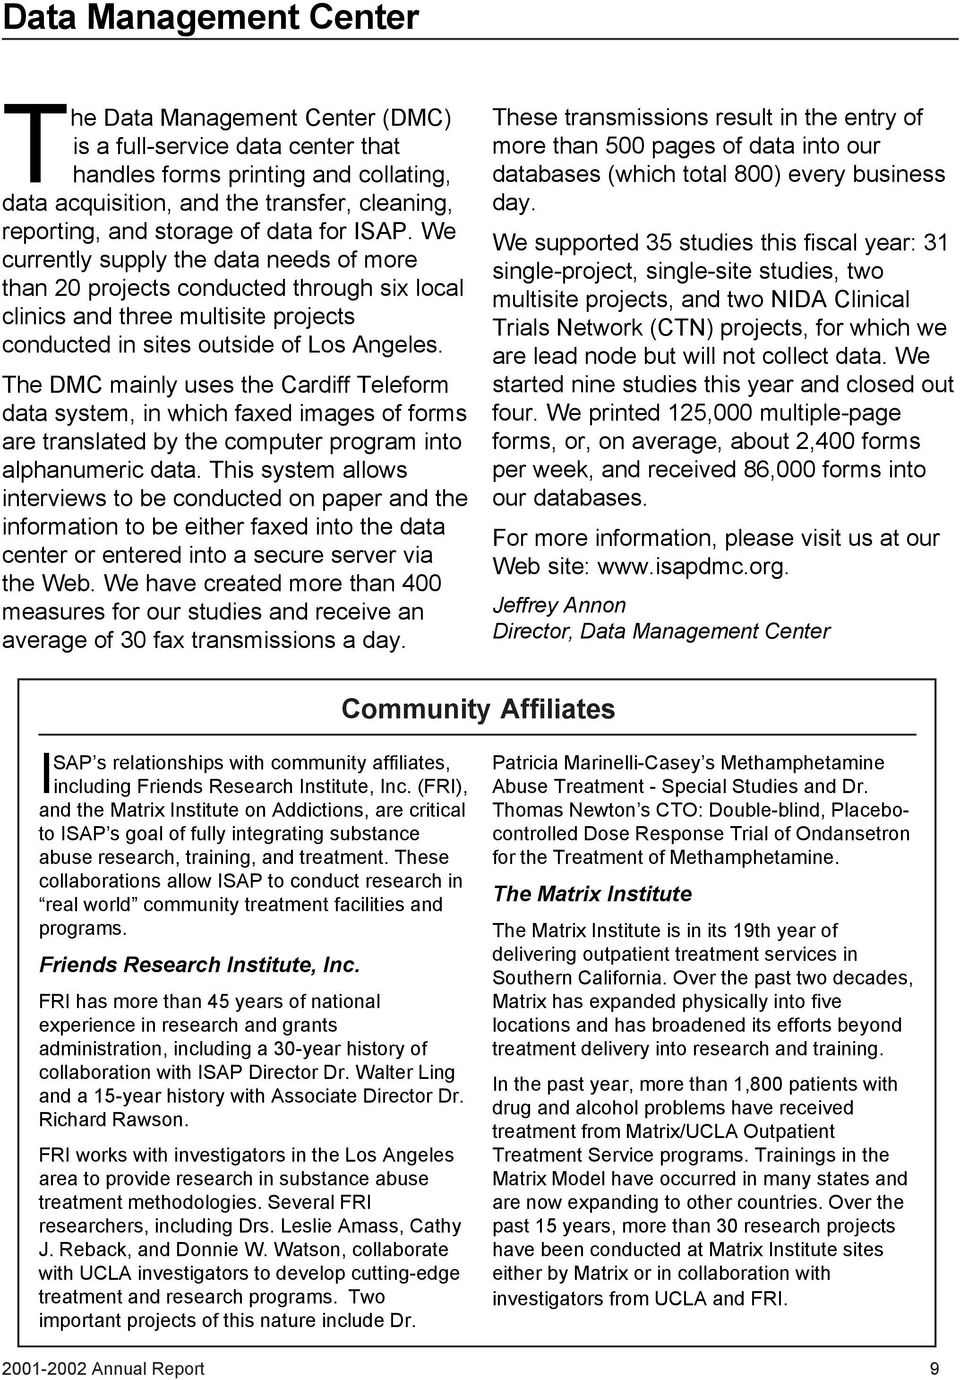 The DMC mainly uses the Cardiff Teleform data system, in which faxed images of forms are translated by the computer program into alphanumeric data.